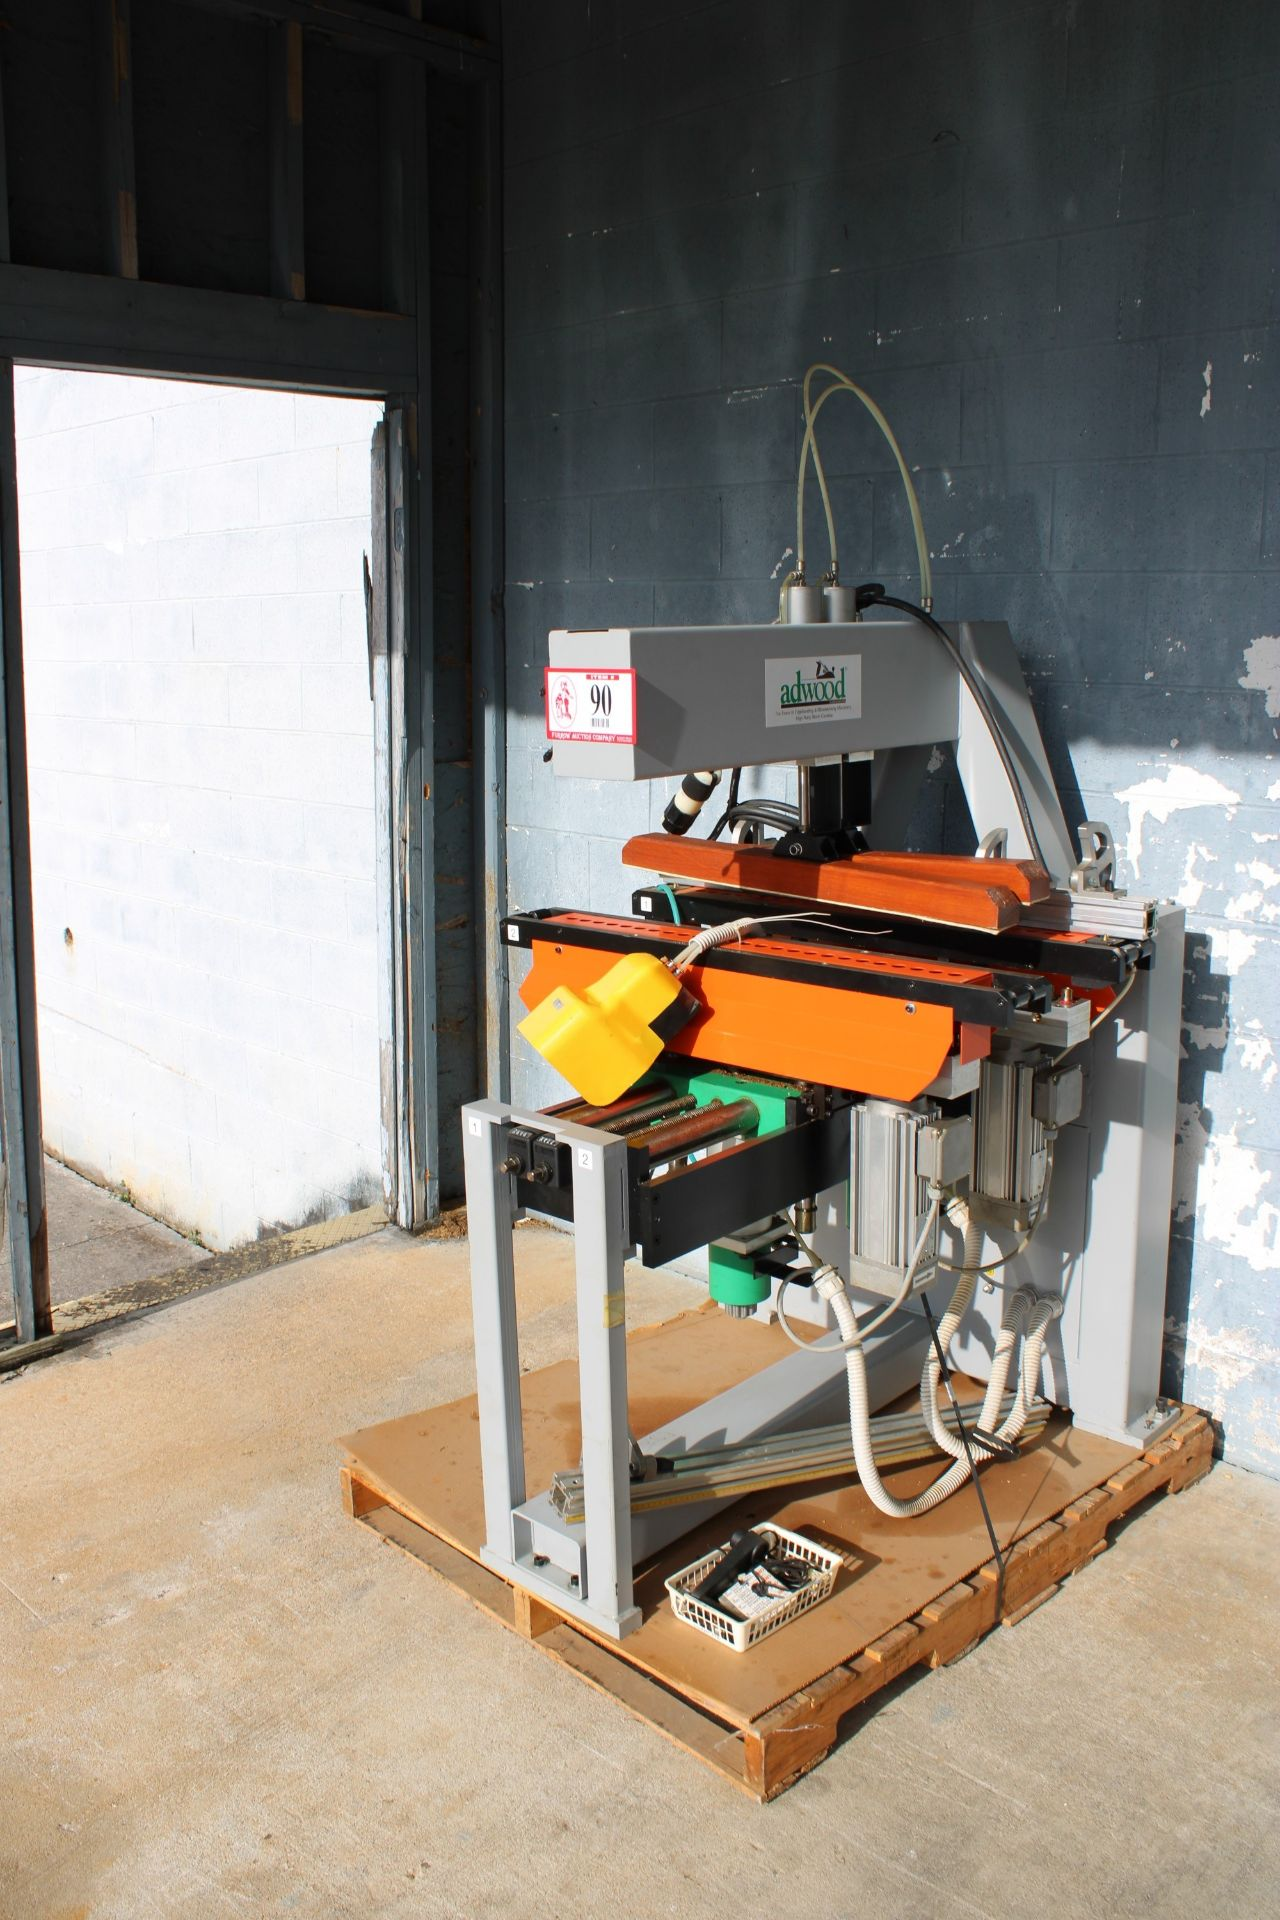 Adwood Detel M-2H-M 35 Double Boring Machine Press, 230v 3 Phase, Purchased New and Used Less Than